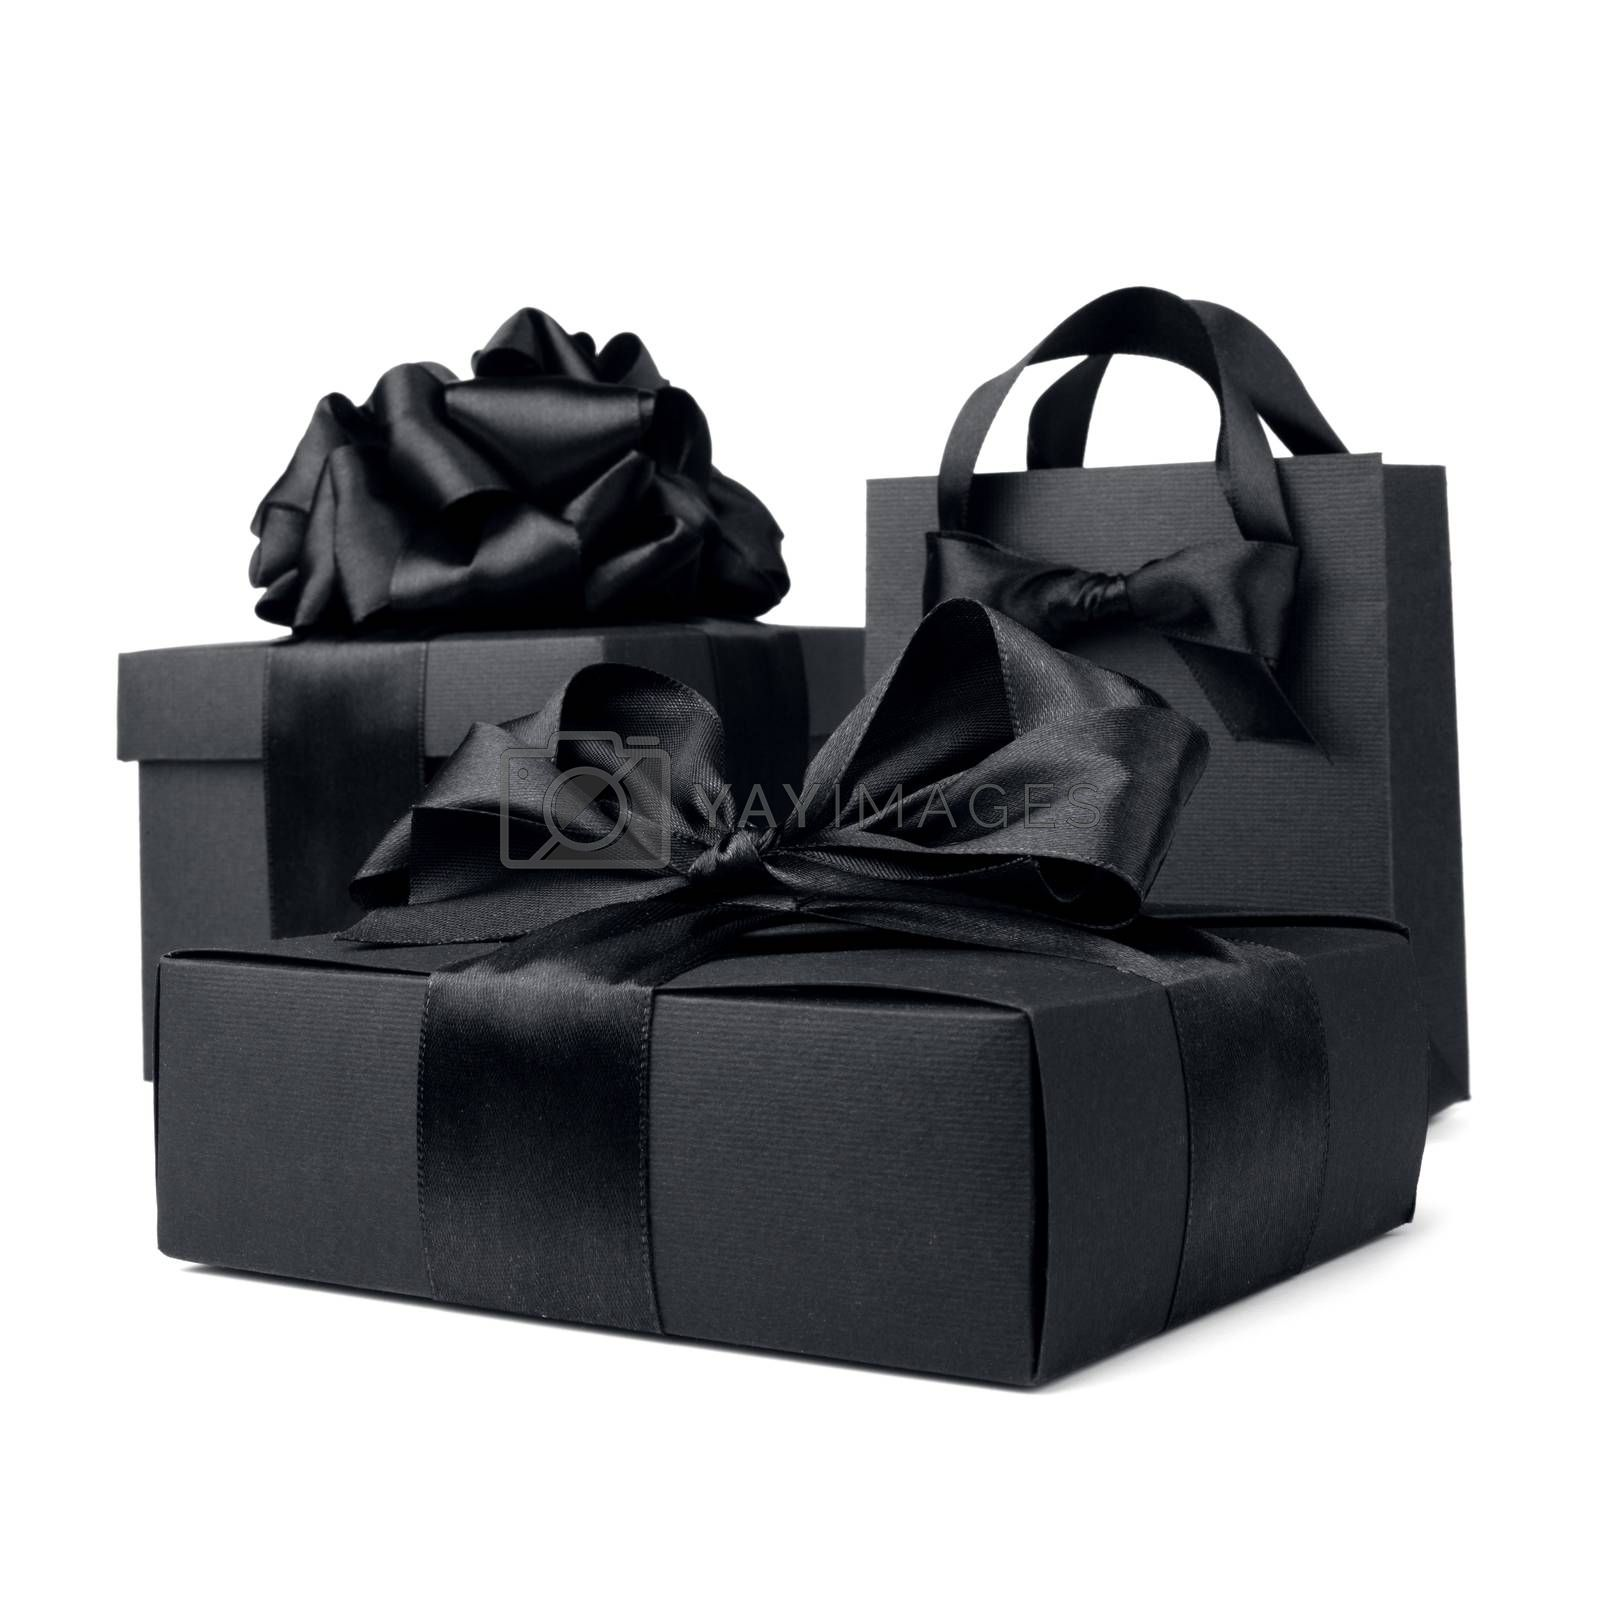 Royalty free image of Shopping black friday bags by destillat